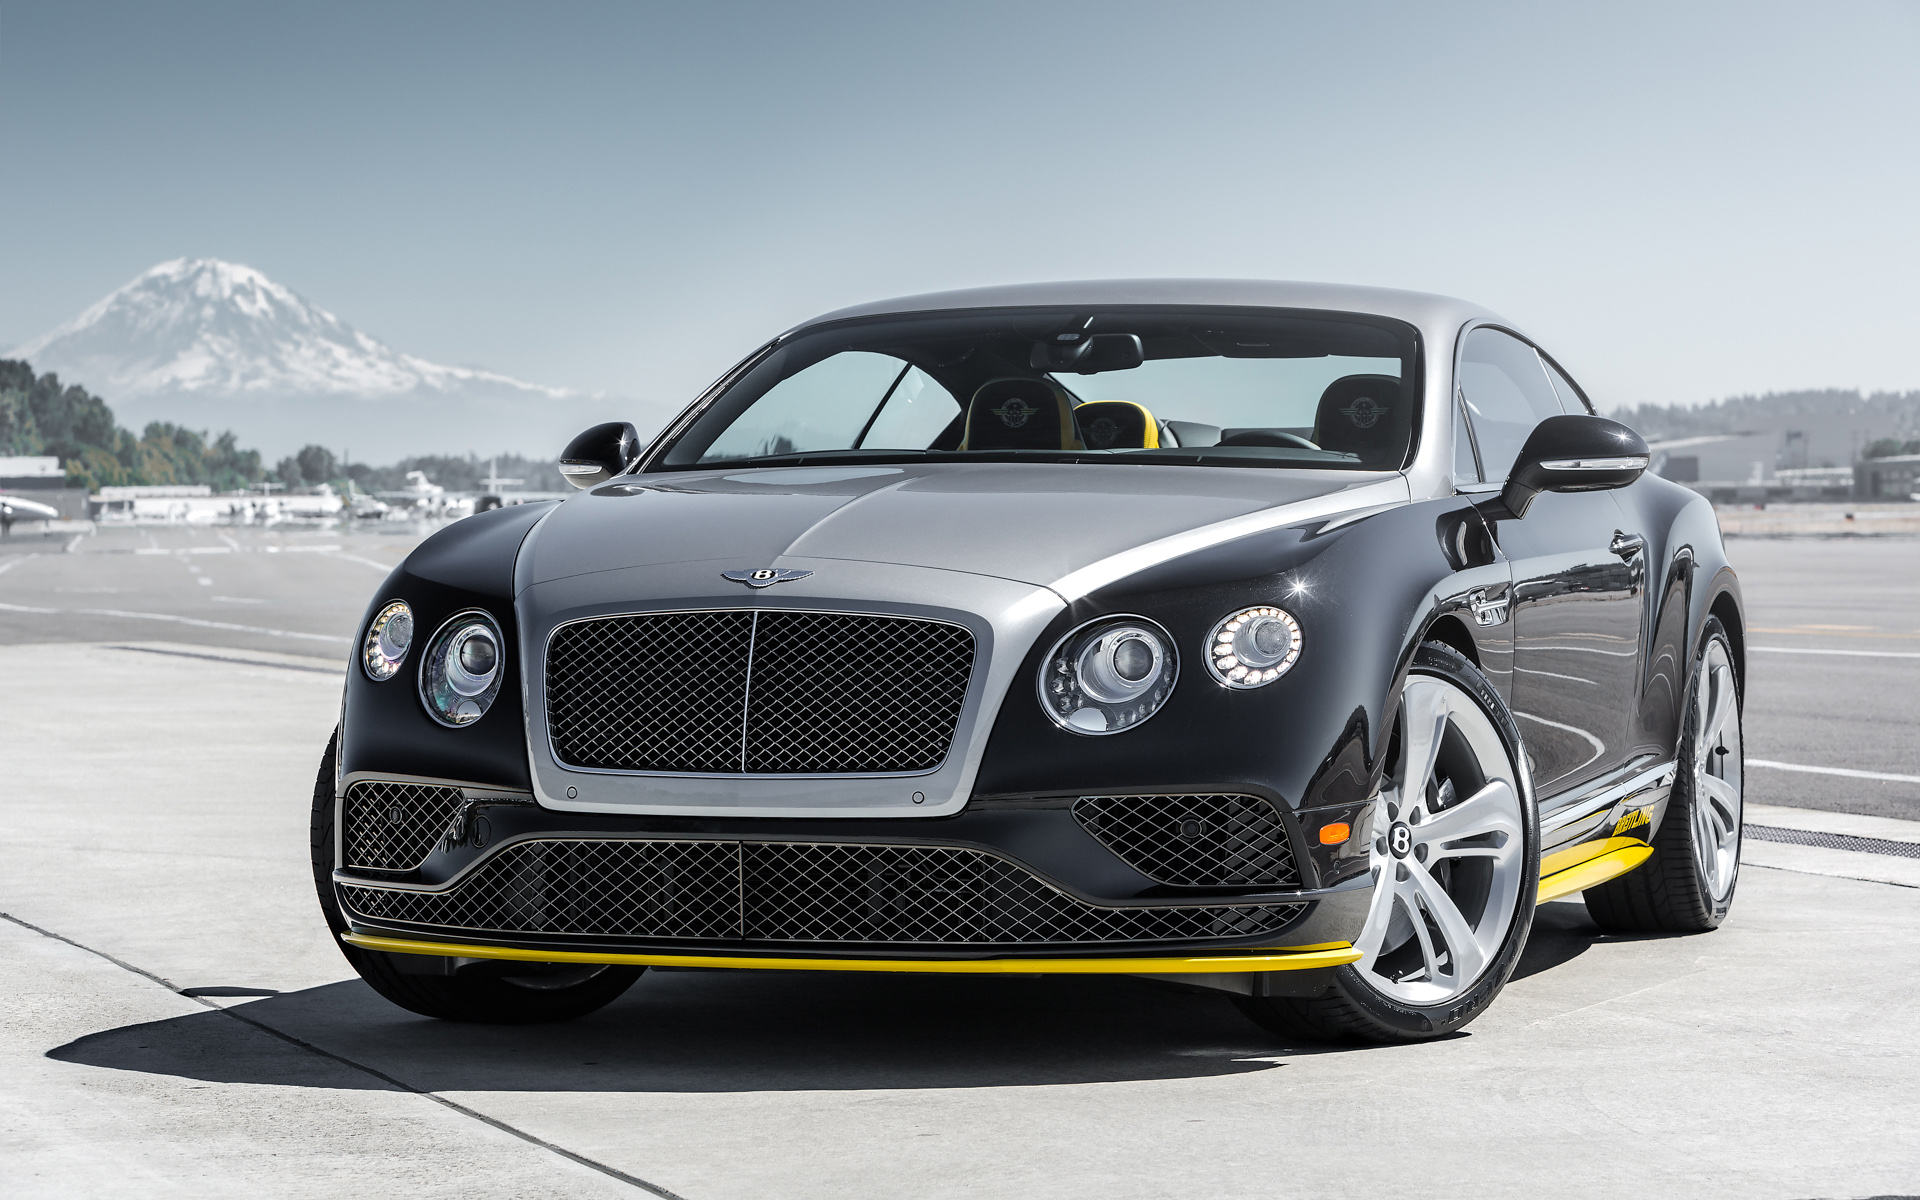 Bentley Car Wallpaper >> 2015 Bentley Continental Gt Wallpaper Hd Car Wallpapers